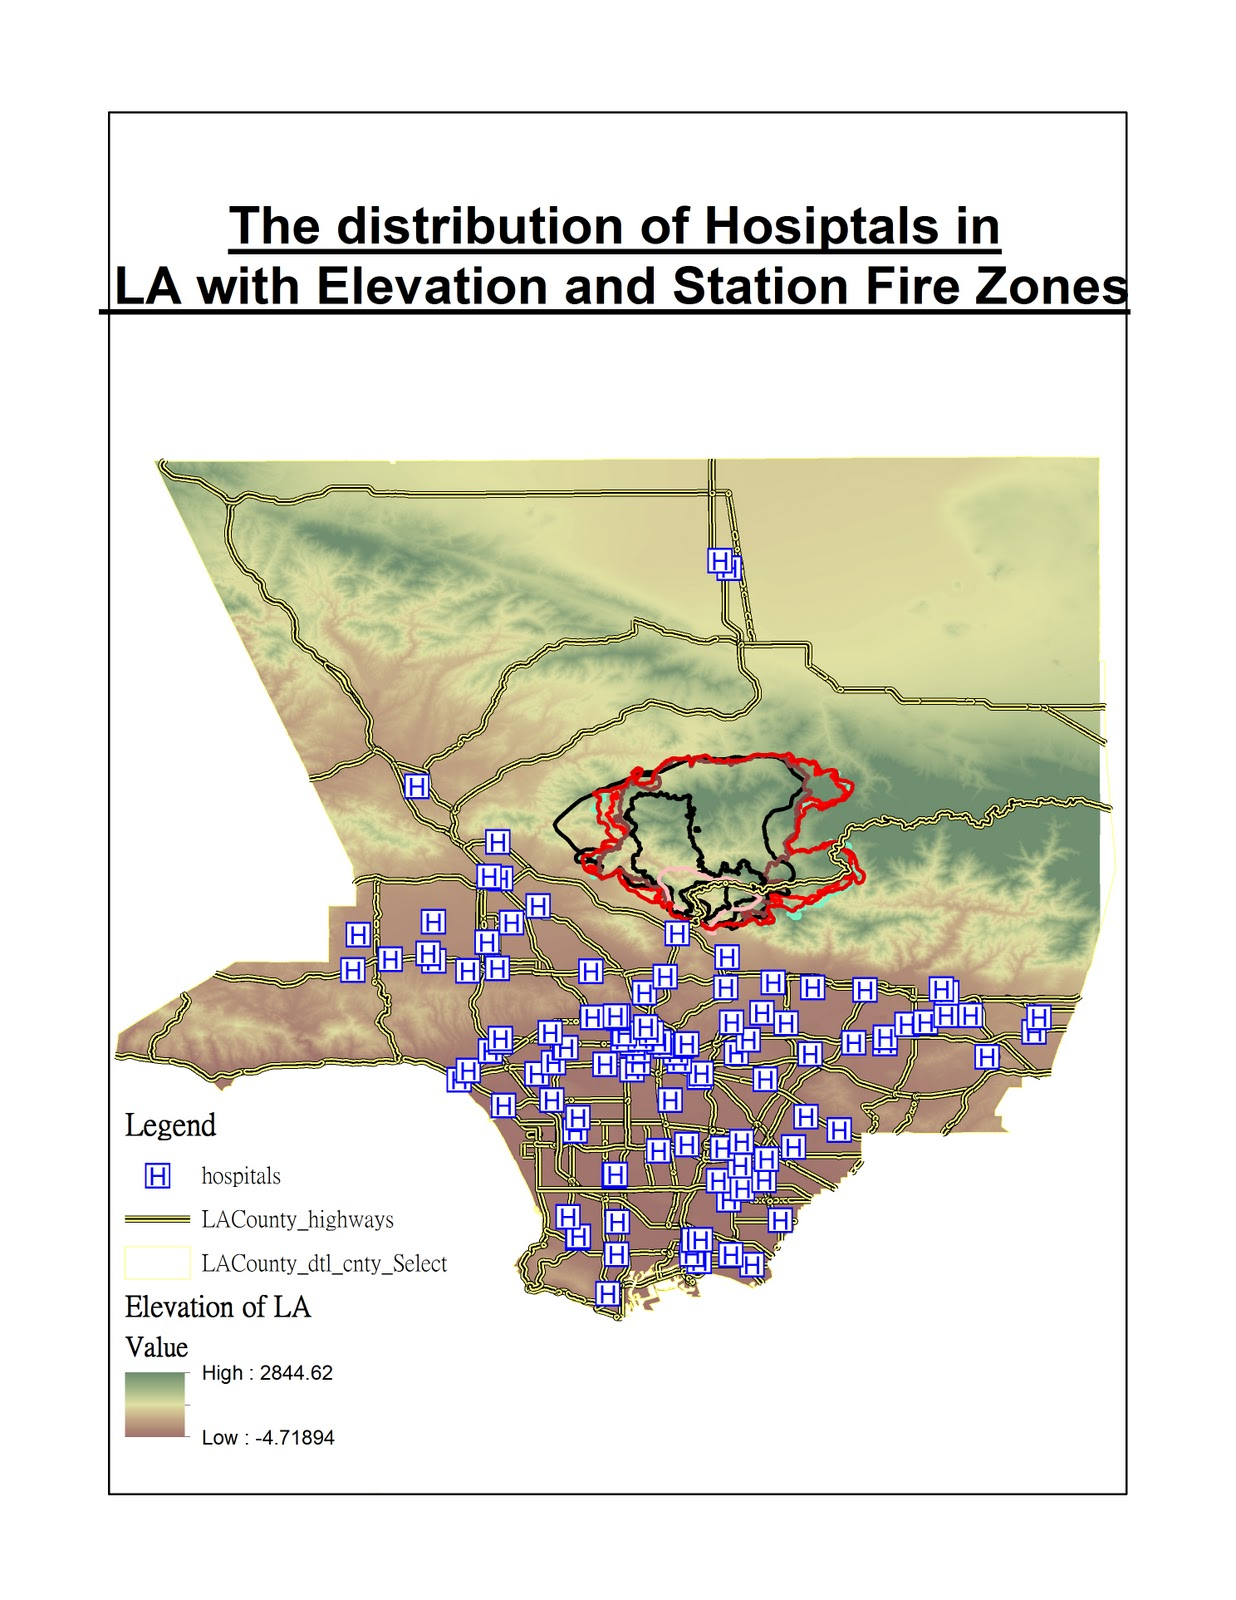 the second map shows the fire zones the hospitals and the freeway distribution in los angeles in order to find which one is the most dangerous and mostly